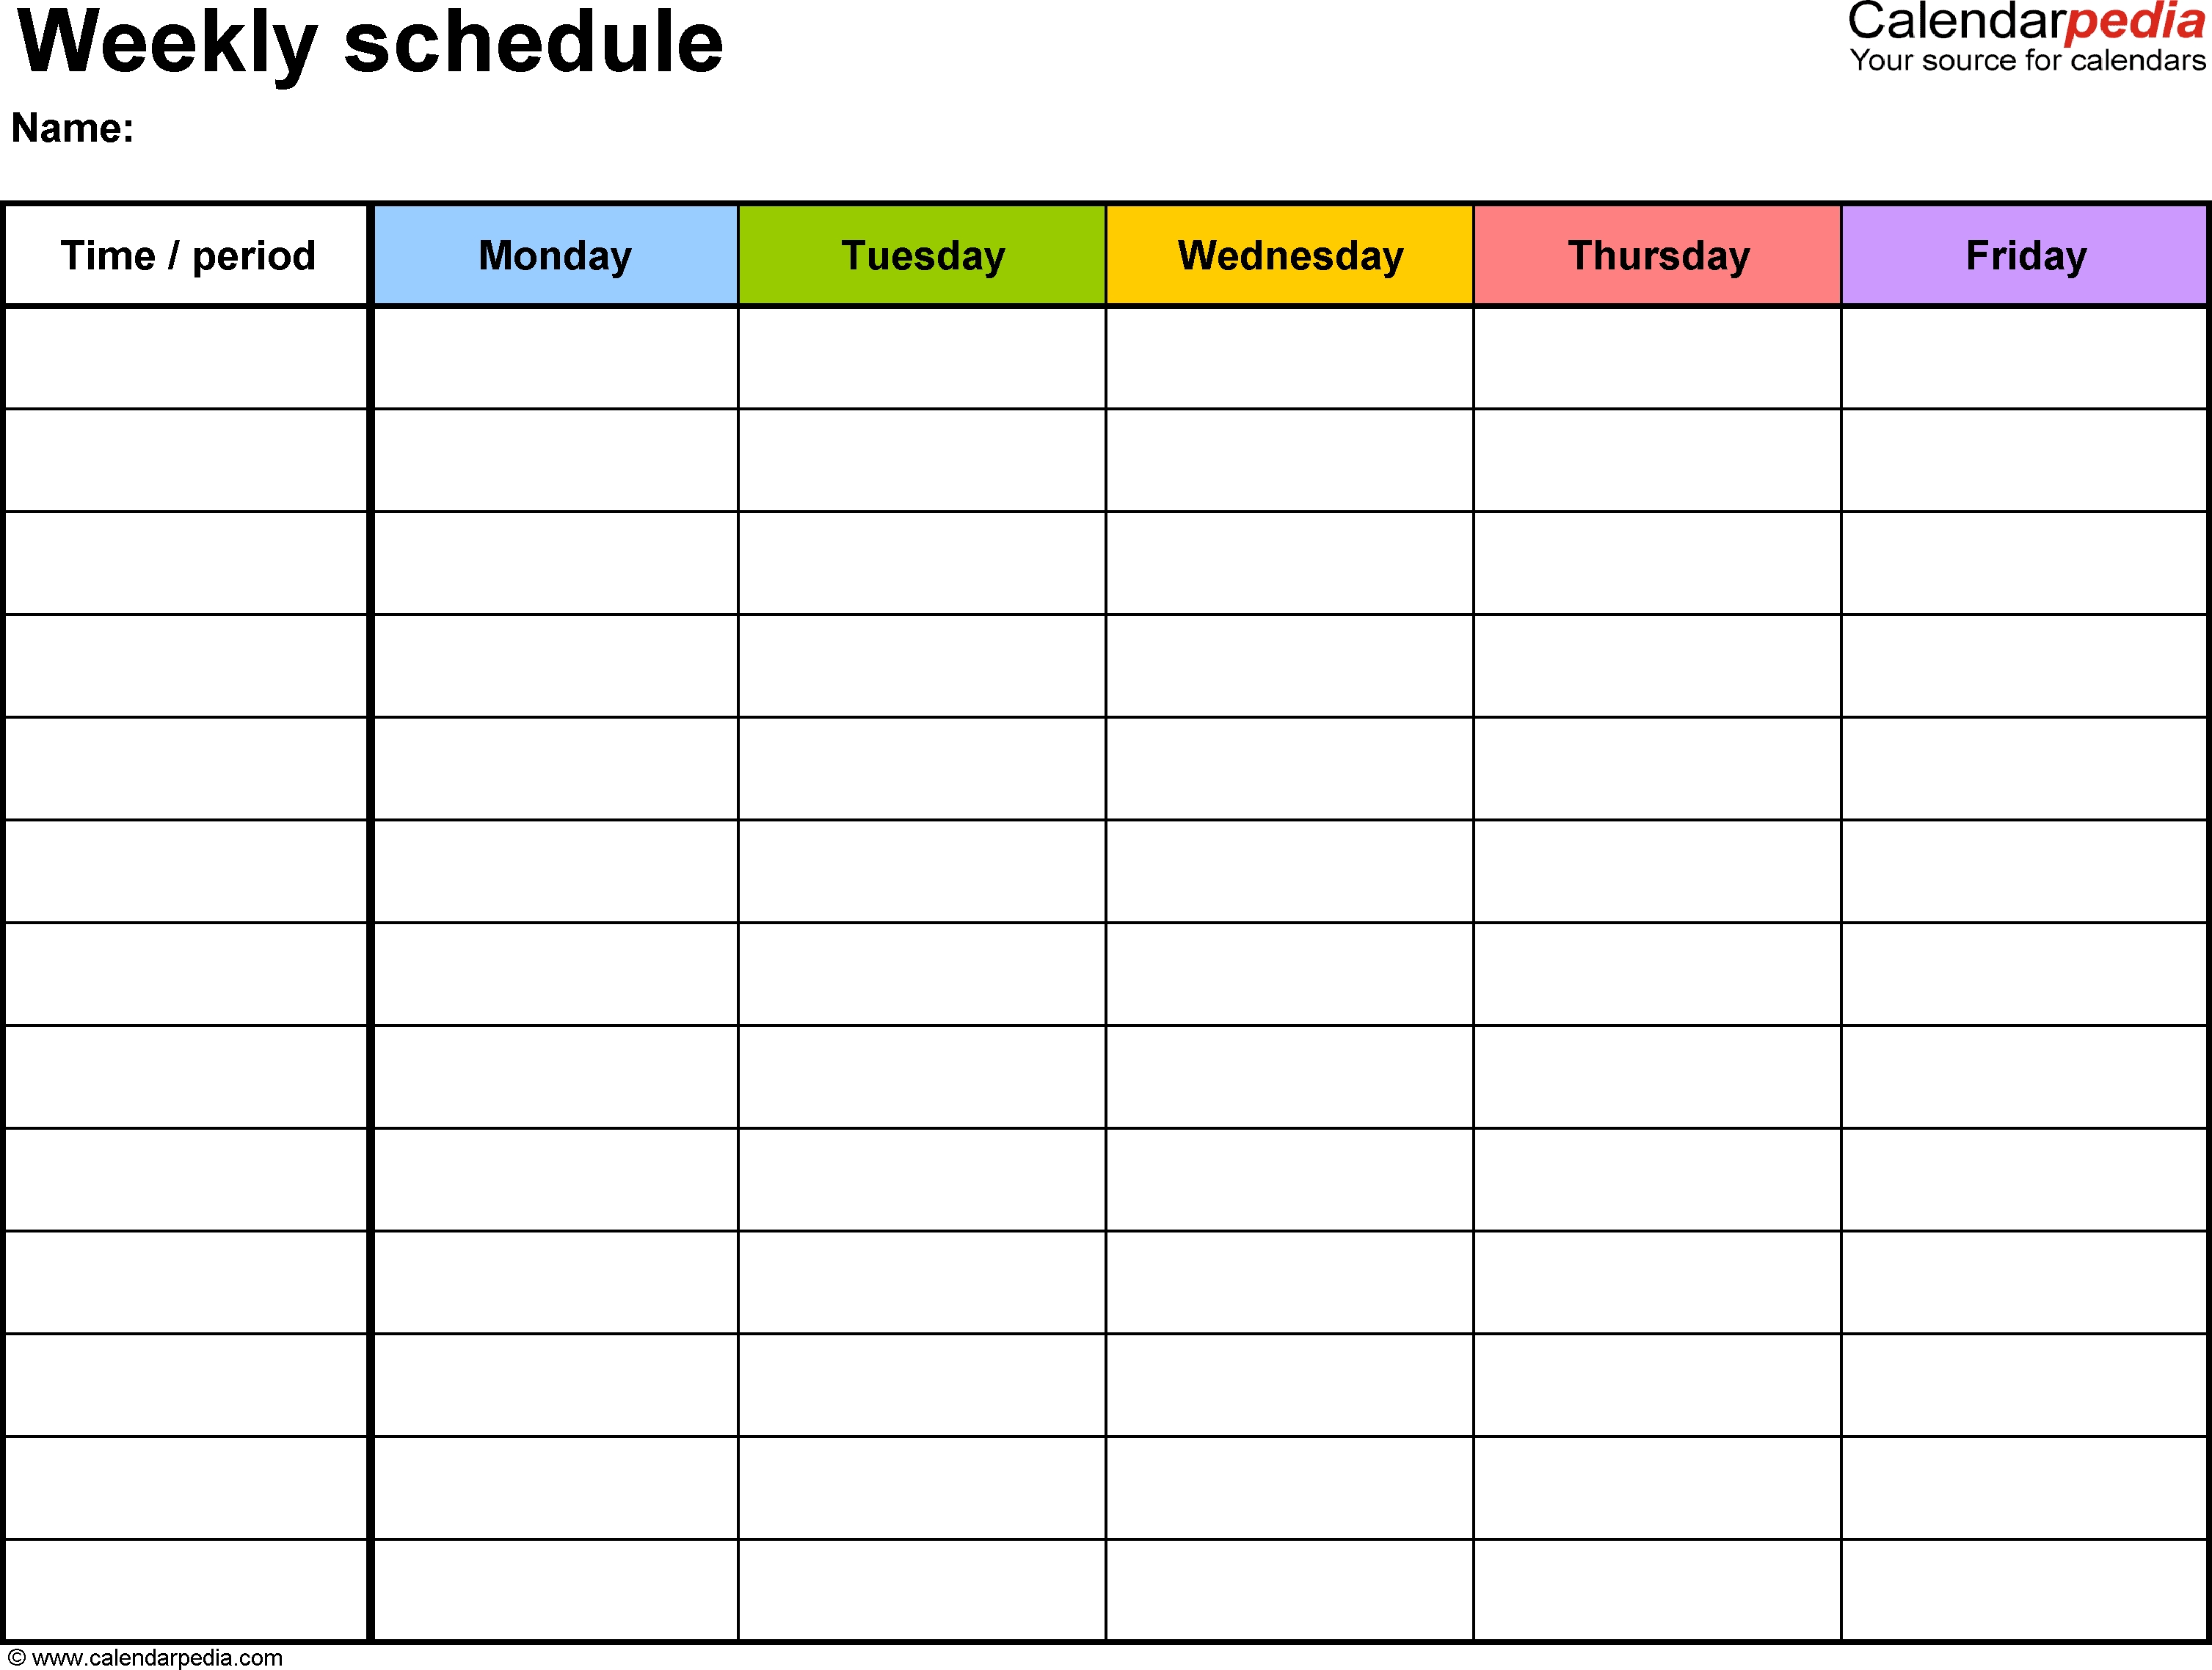 Free Weekly Schedule Templates For Word - 18 Templates inside Free Online Printable Weekly Calendar